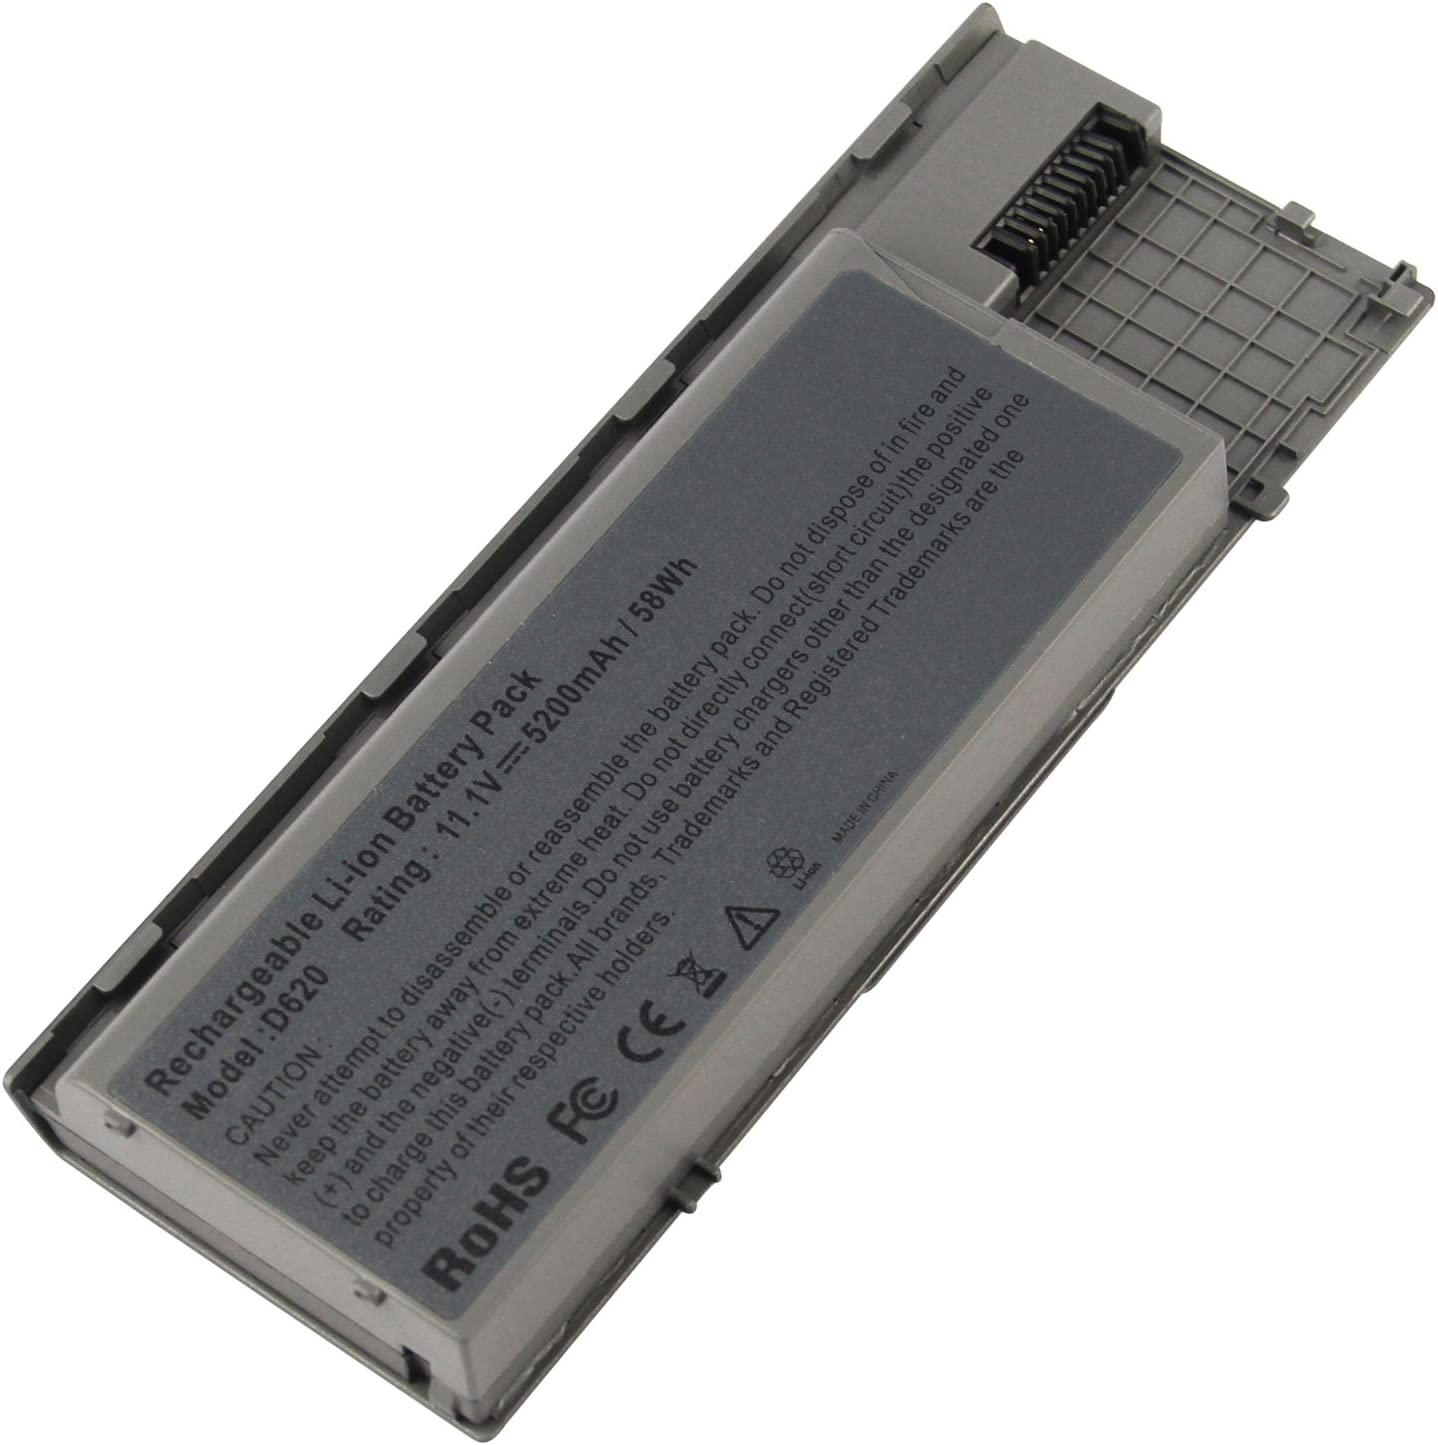 AC Doctor INC Laptop Battery for Dell Latitude D620 Latitude D630 Latitude D630c Latitude D631 Precision M2300, 5200mAh/11.1V/6-Cells